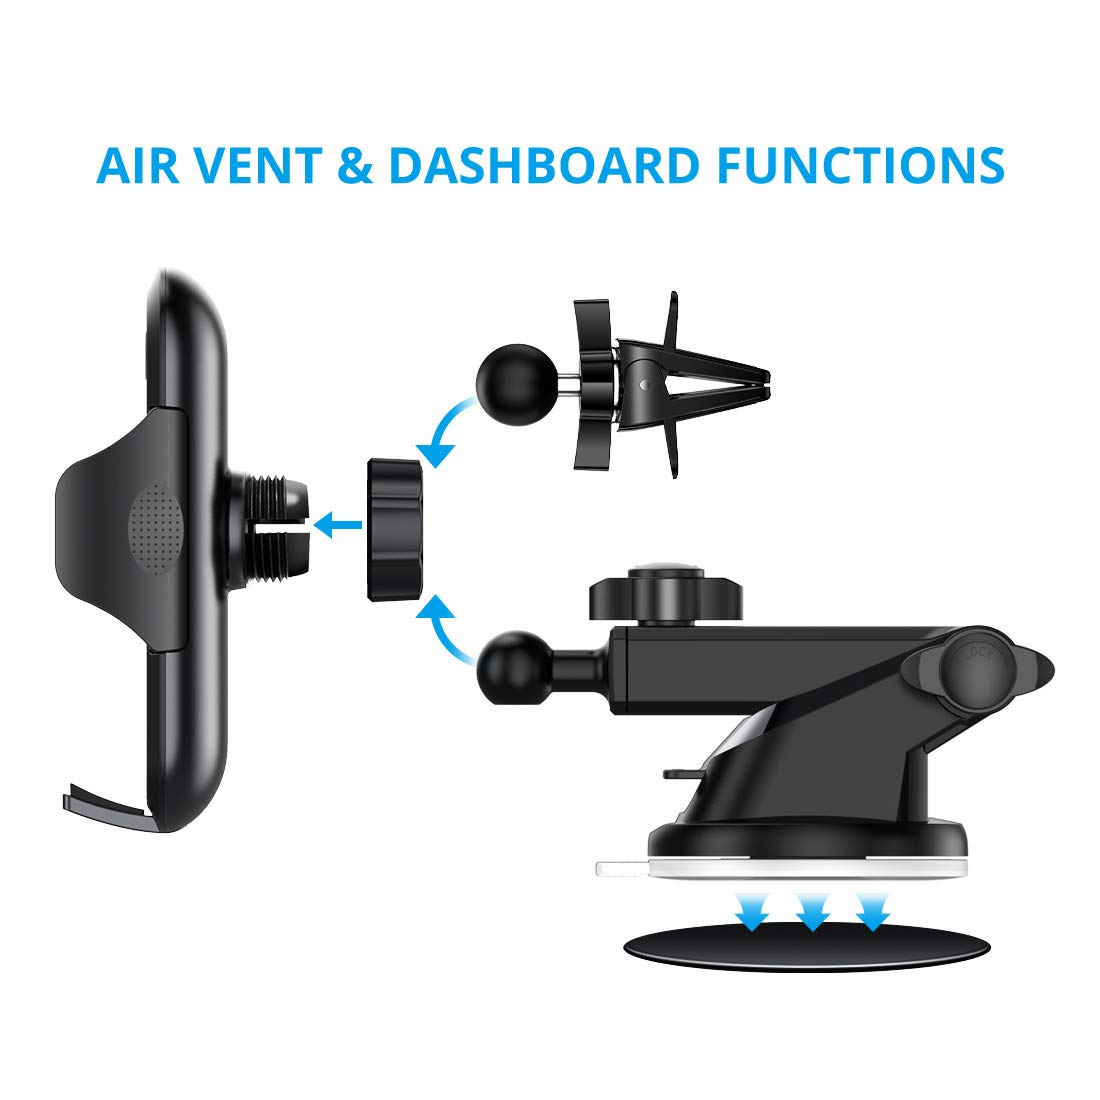 Universal Car Phone Mount VICSEED Car Phone Holder for Car Dashboard Windshield Air Vent Adjustable Long Arm Strong Suction Cell Phone Car Mount Fit for iPhone X XS Max XR Samsung Galaxy Note 10 S10 by VICSEED (Image #6)